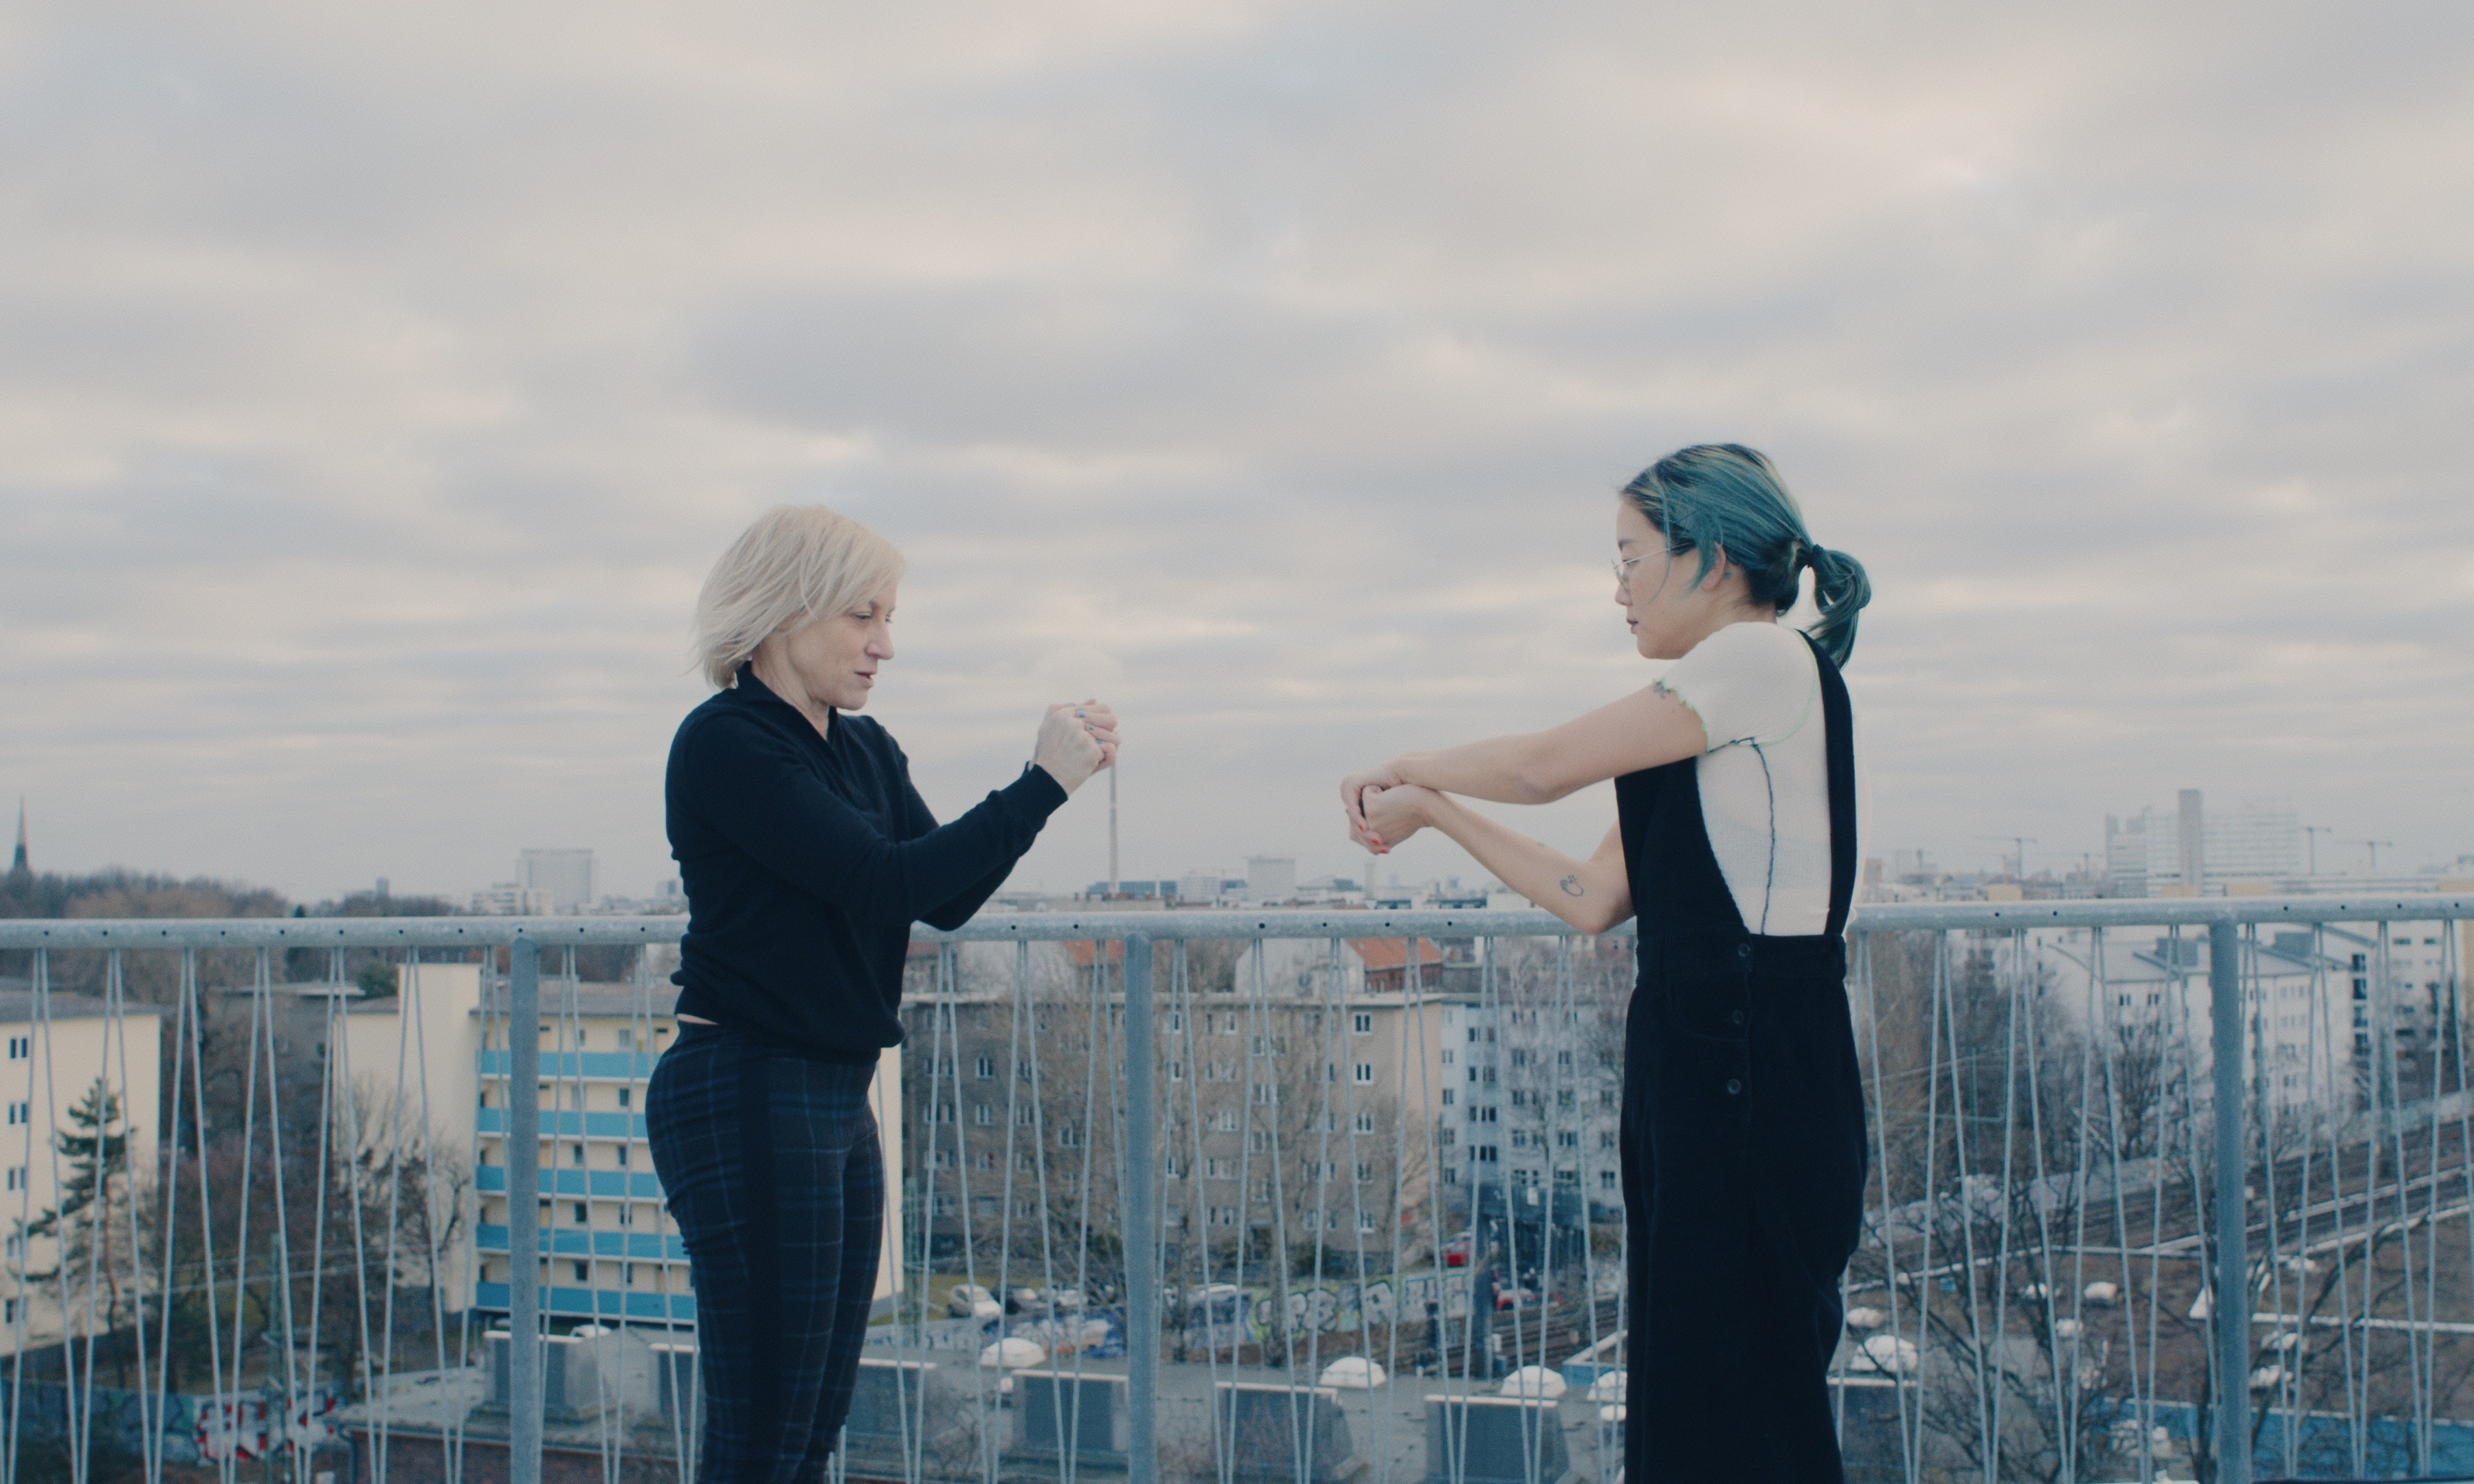 Christine Sun Kim and Meg Stuart dancing on a roof top, Berlin skyline in the background